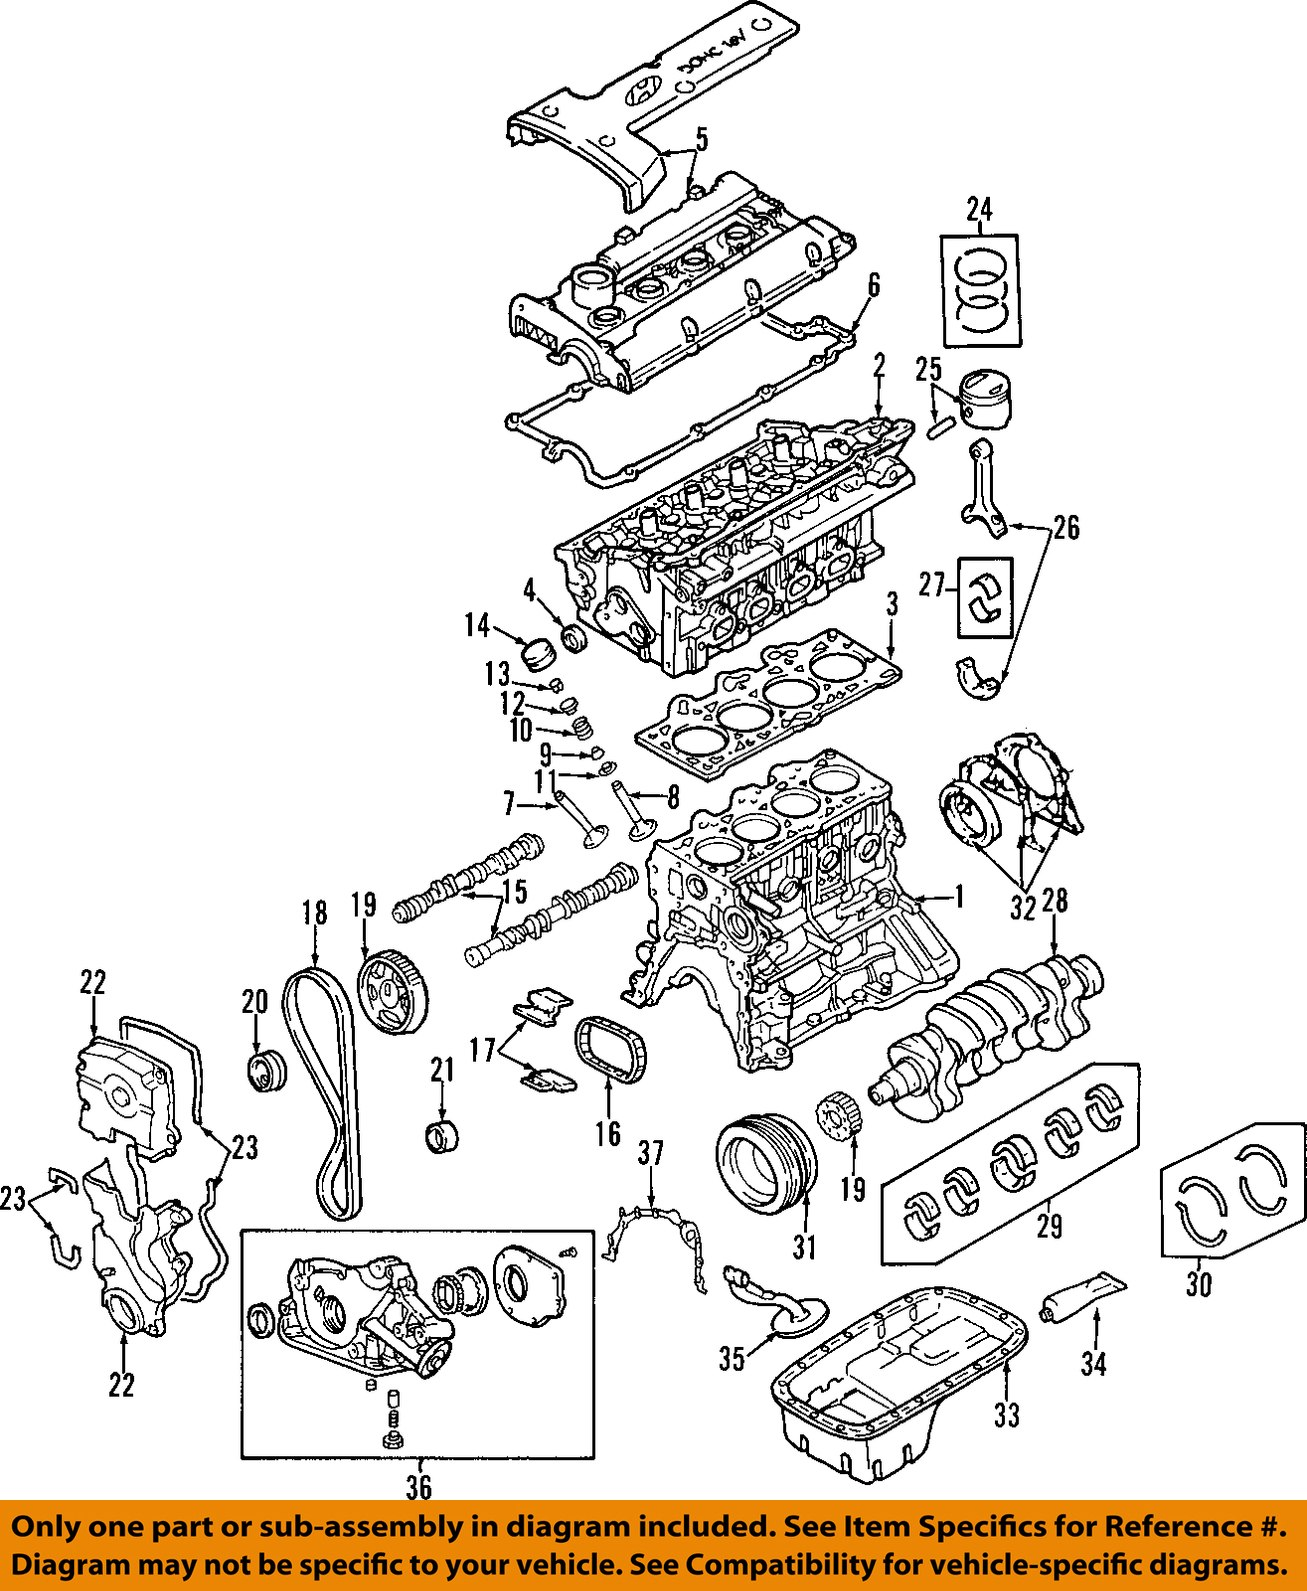 hyundai 2 0 engine diagram wiring diagram operations 2 0 hyundai engine oil diagram wiring diagram mega hyundai 2 0 engine diagram